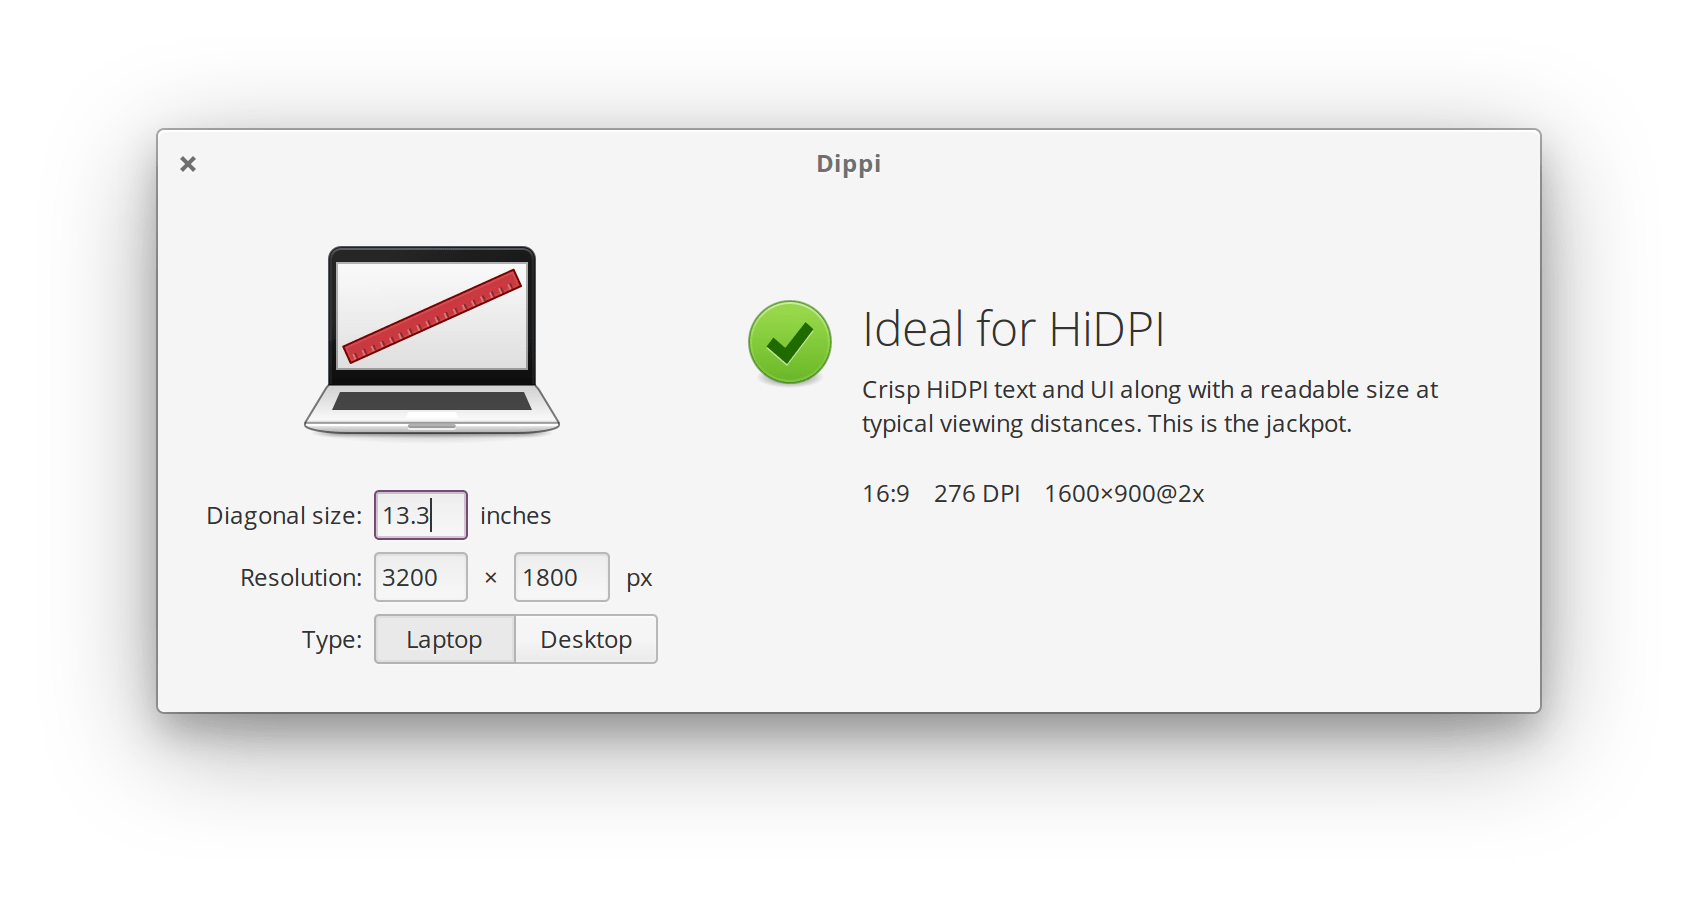 Flipboard: Get Dippi on elementary AppCenter